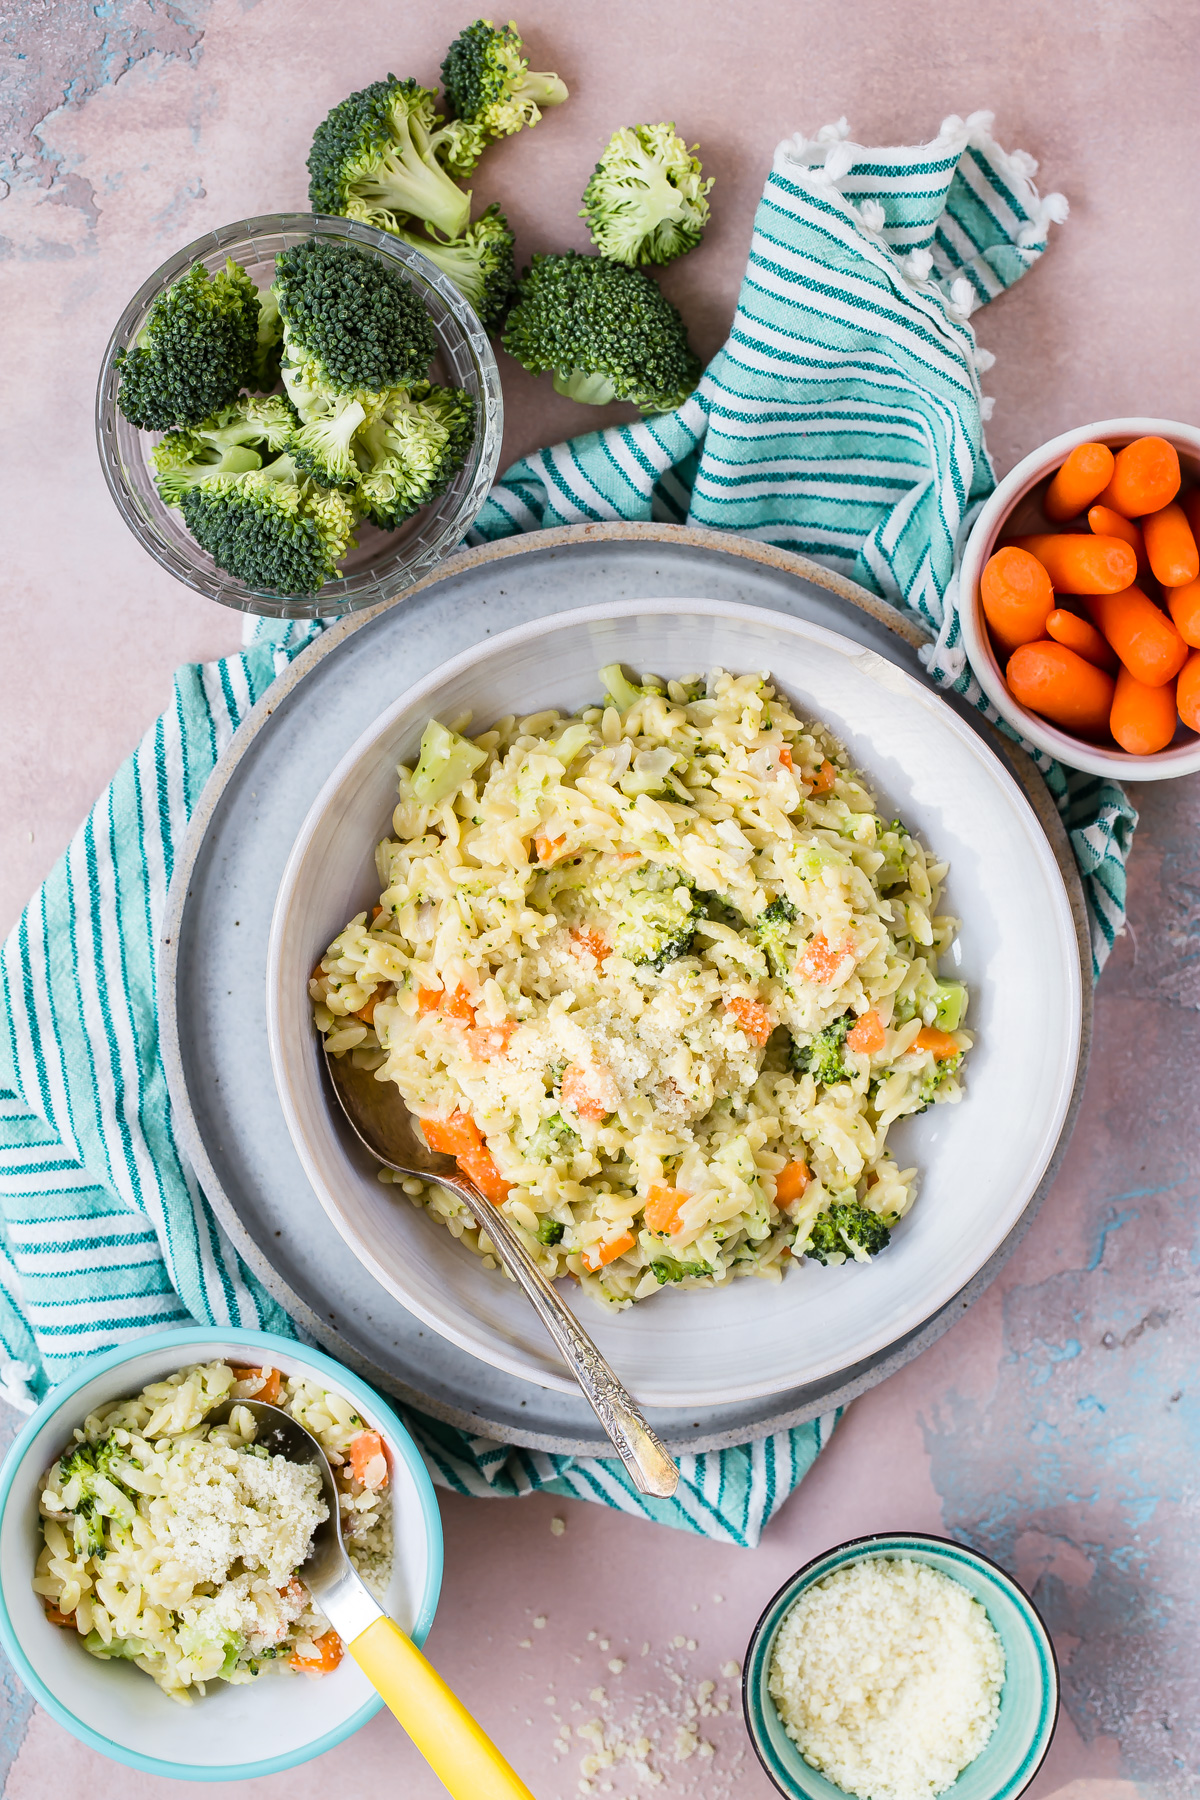 Carrot Broccoli Cheese Orzo recipe from Weelicious.com